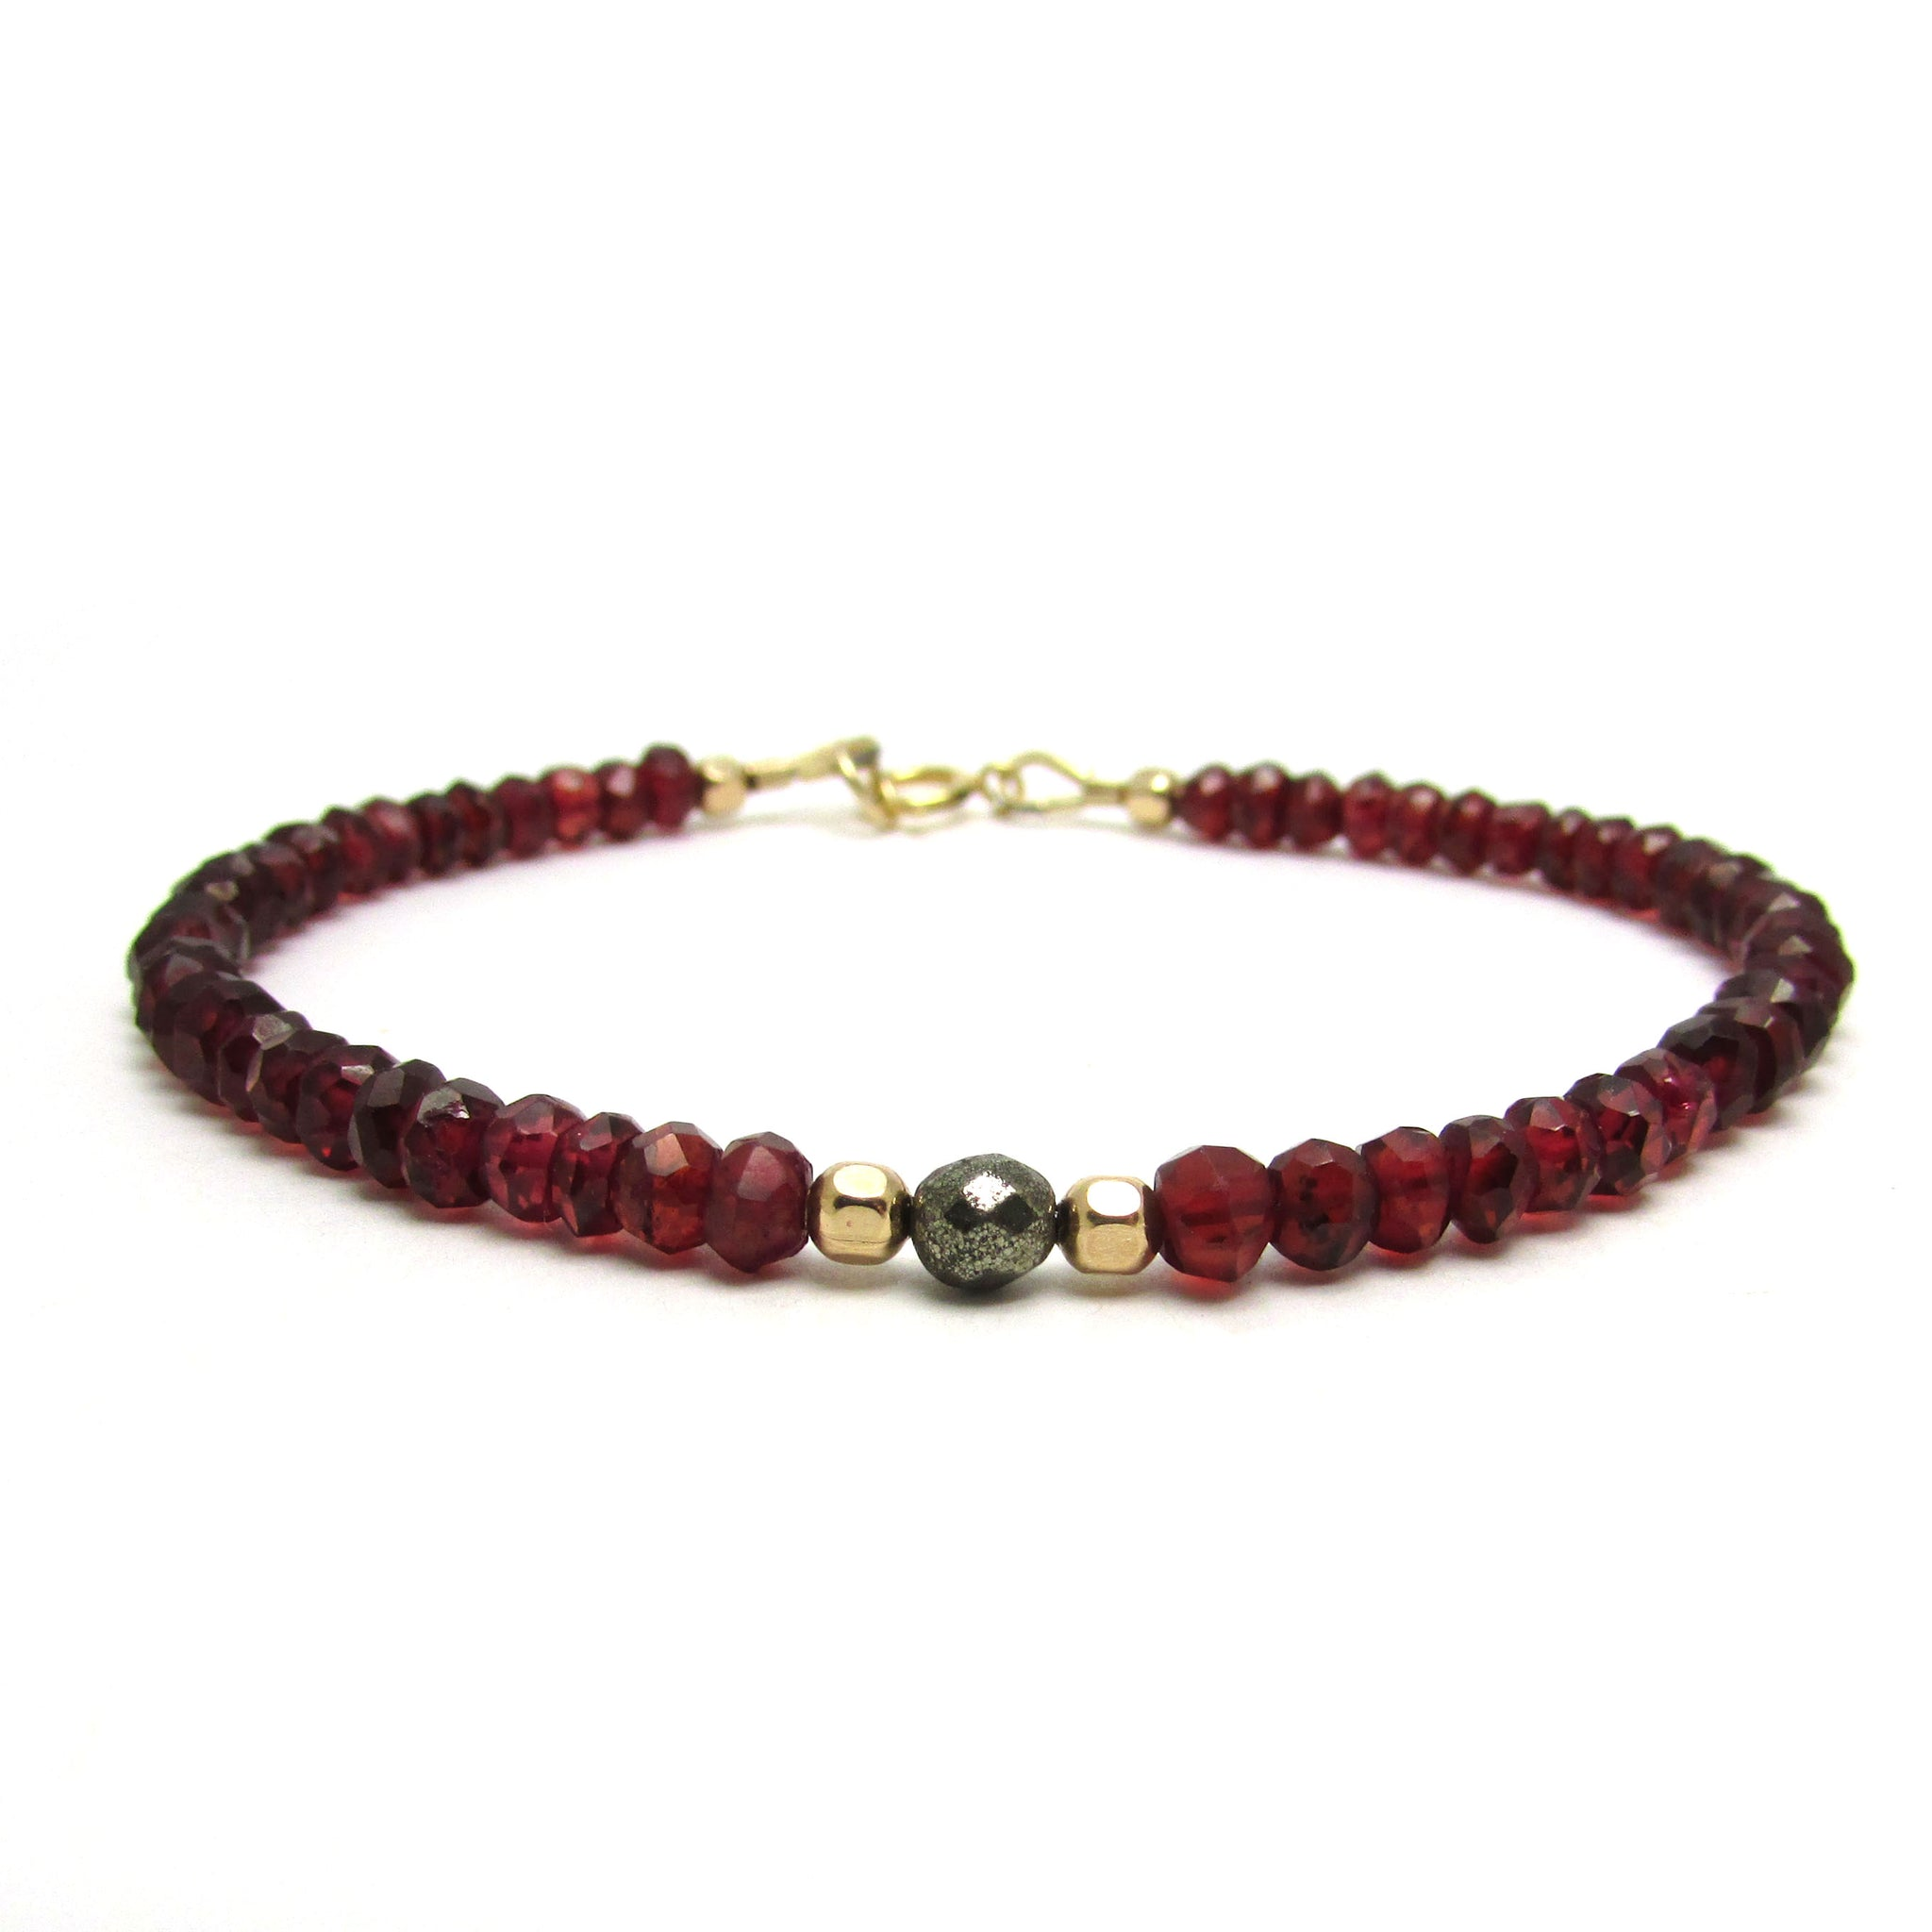 ua garnet gemstone beads hole red en genuine buy smooth bracelet us ebay round large